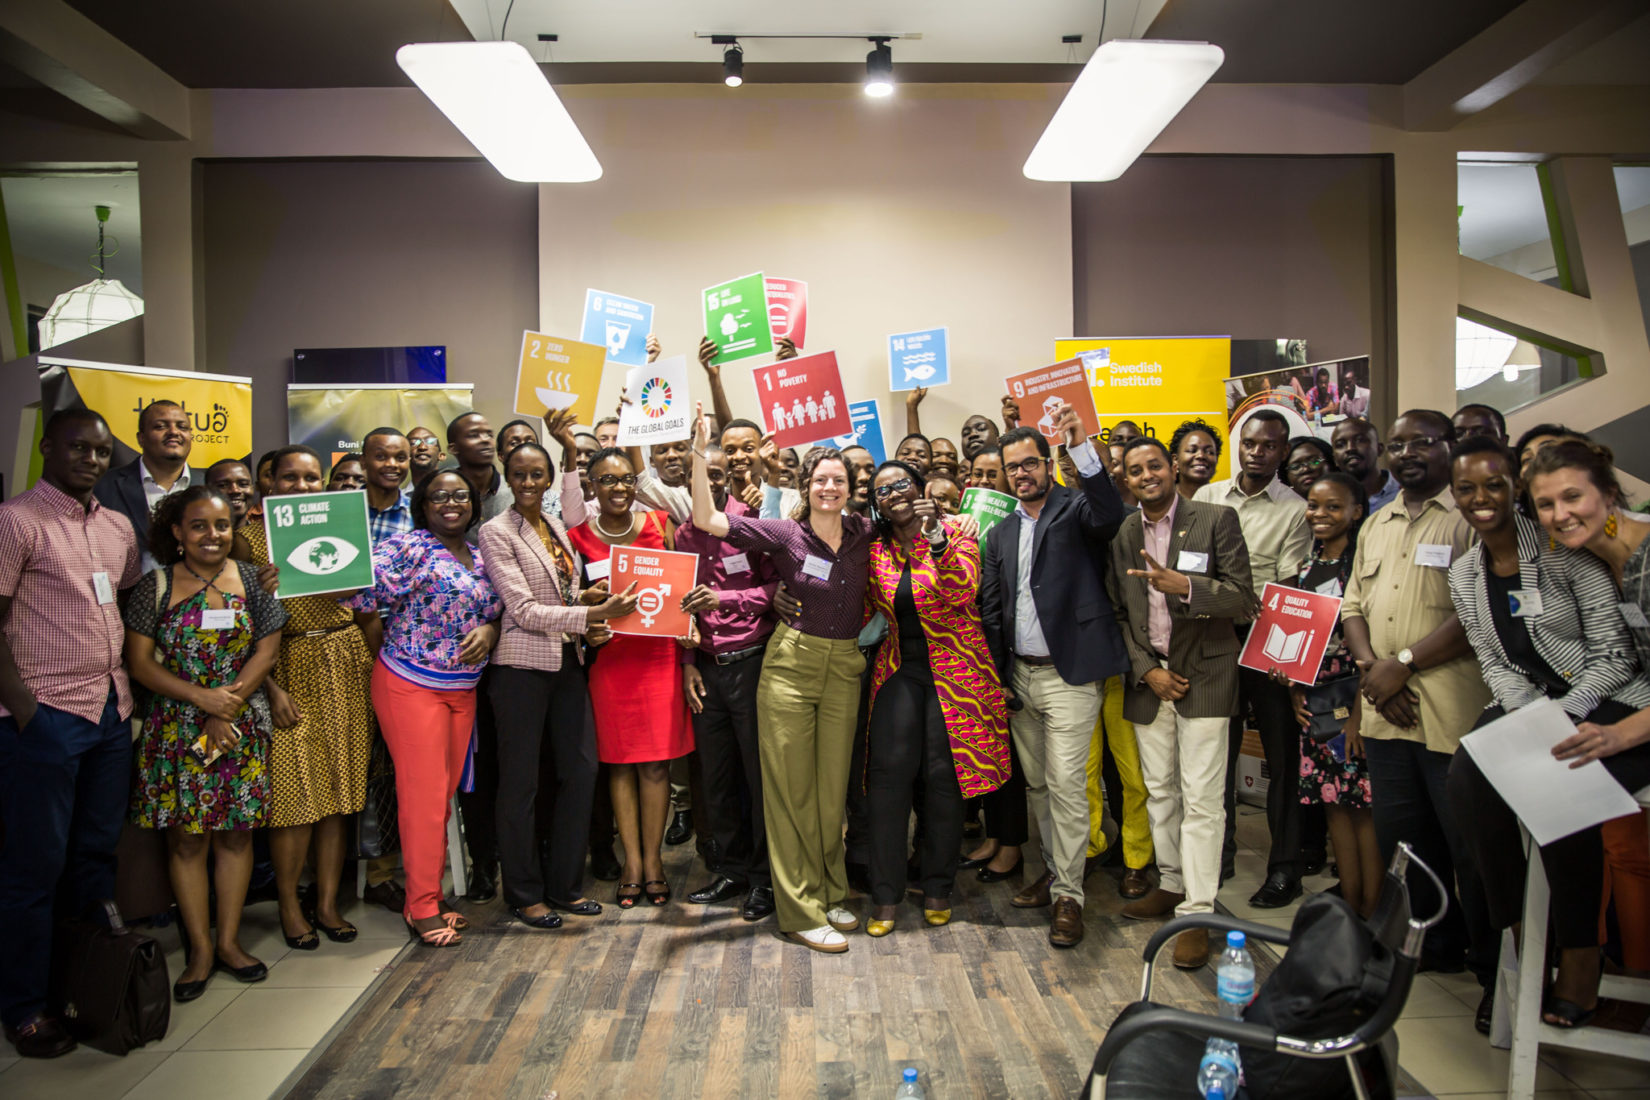 over 30 participants in group picture with symbols of SDGs in their hands